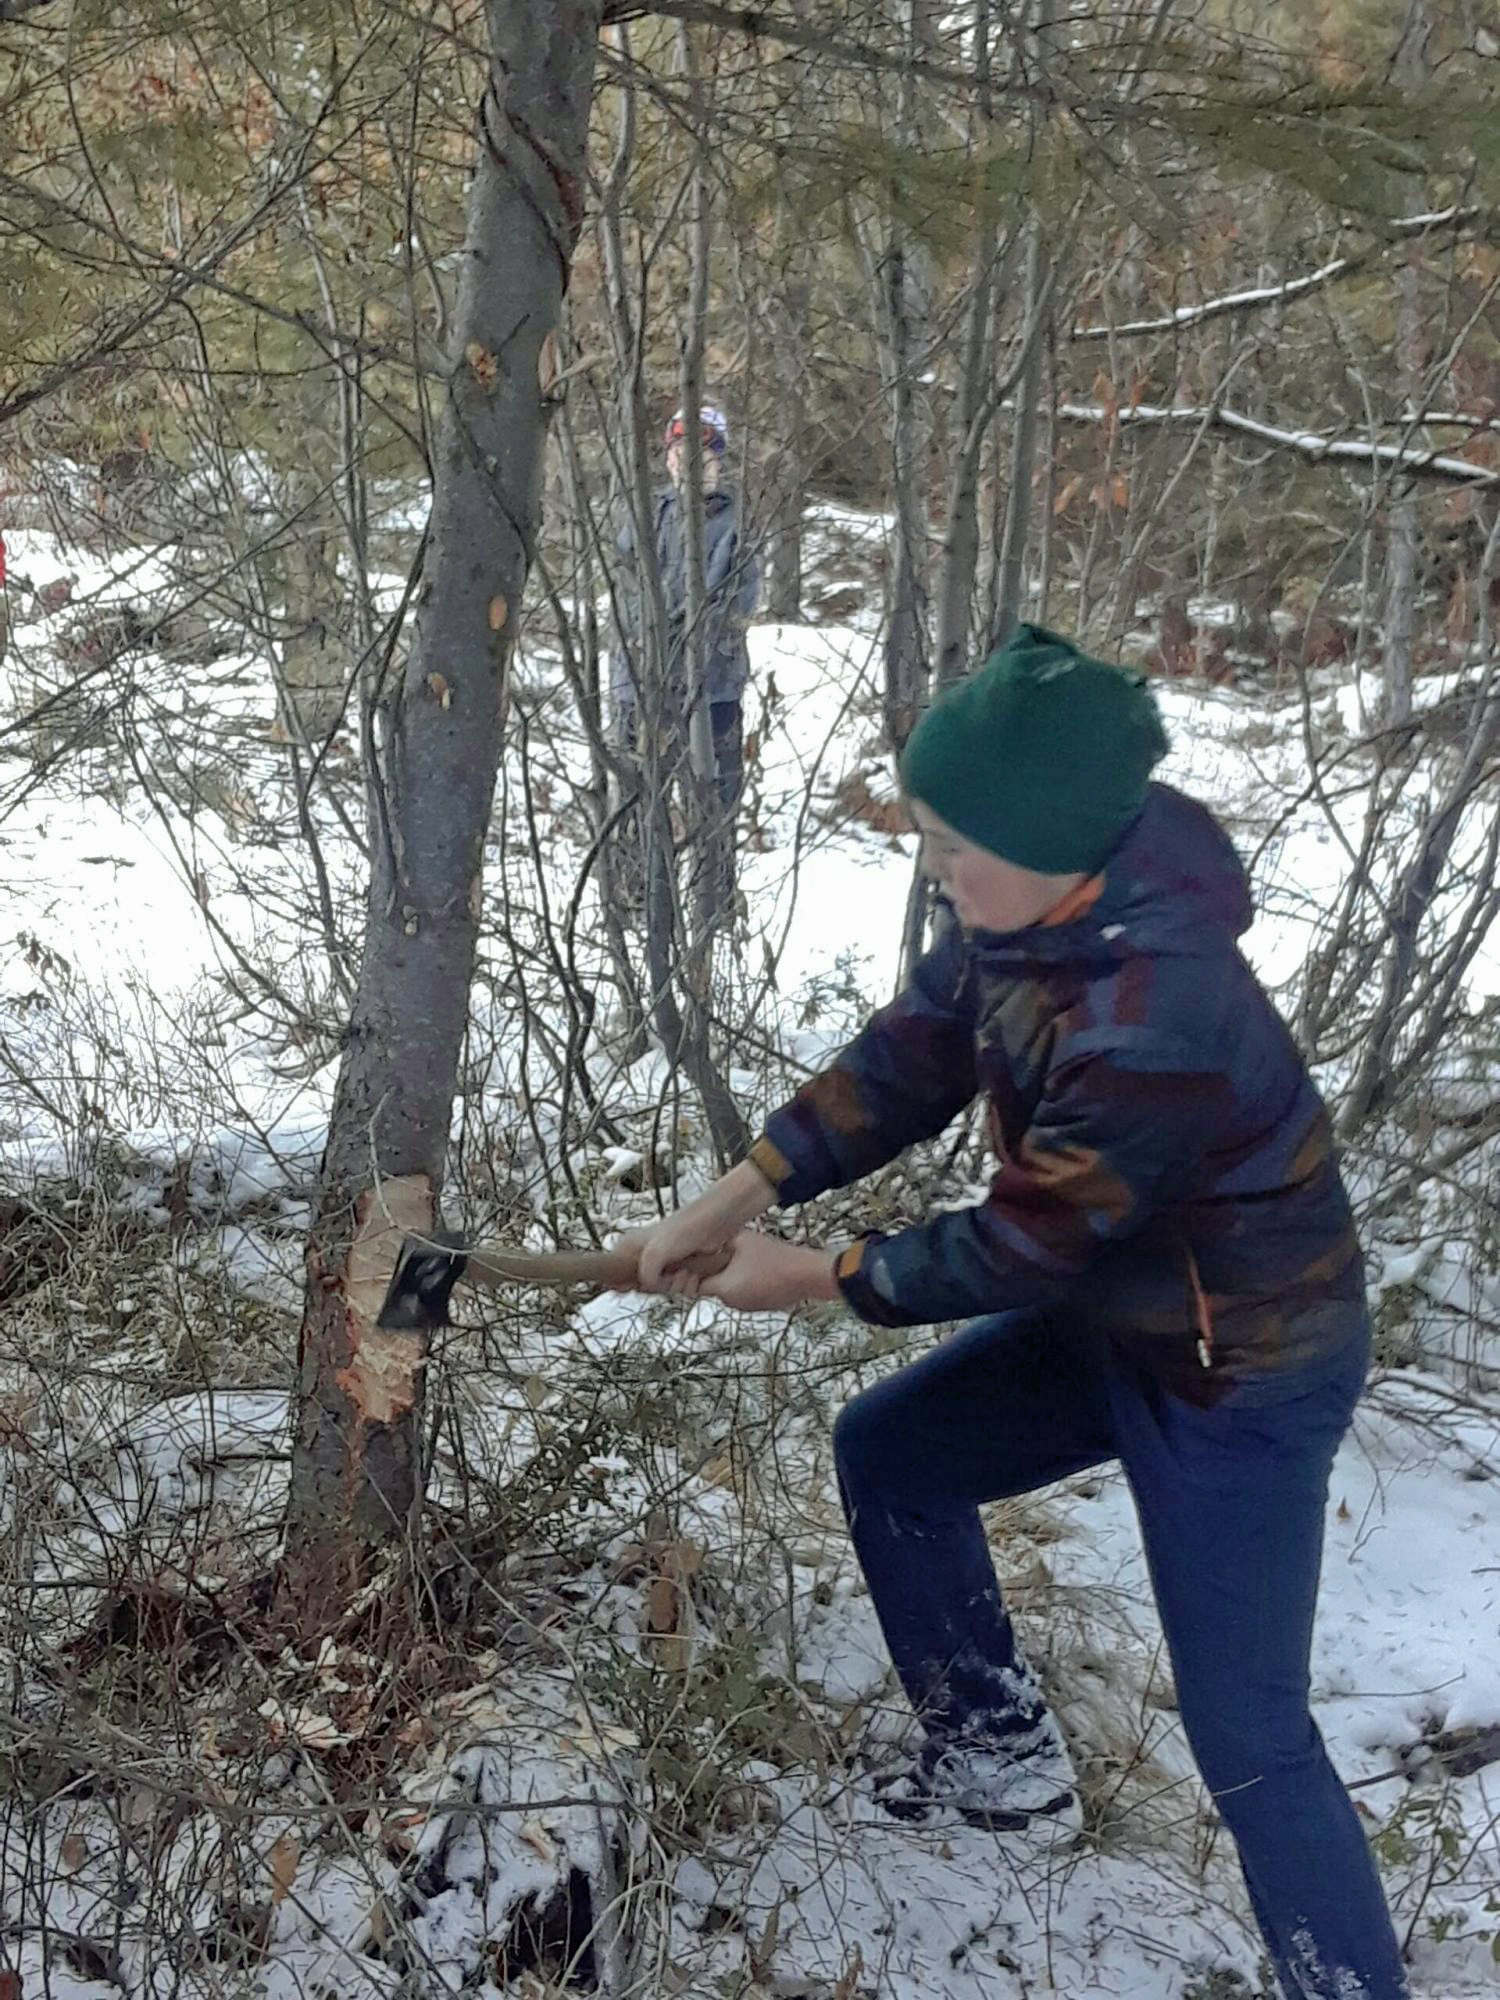 406dad - Cutting Your Christmas Tree